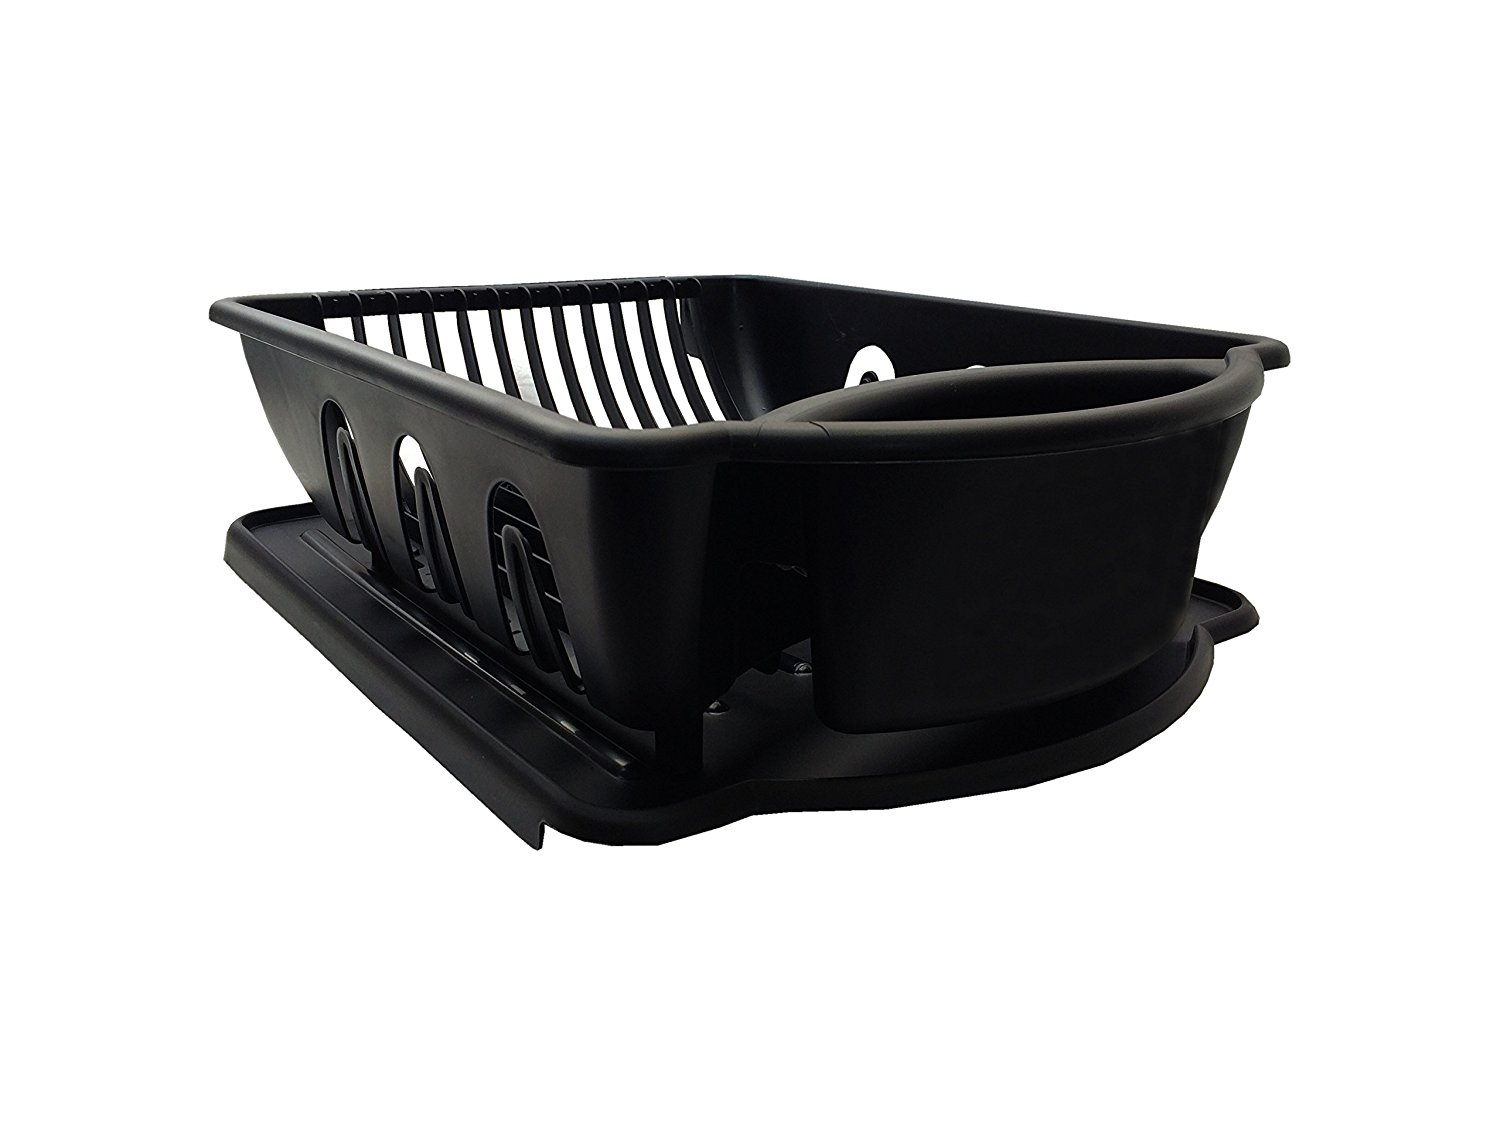 Black Sterilite Two Piece Sink Set Dish Rack Drainer Kitchen Perimeter Cup Holder Flatware by Unique Imports